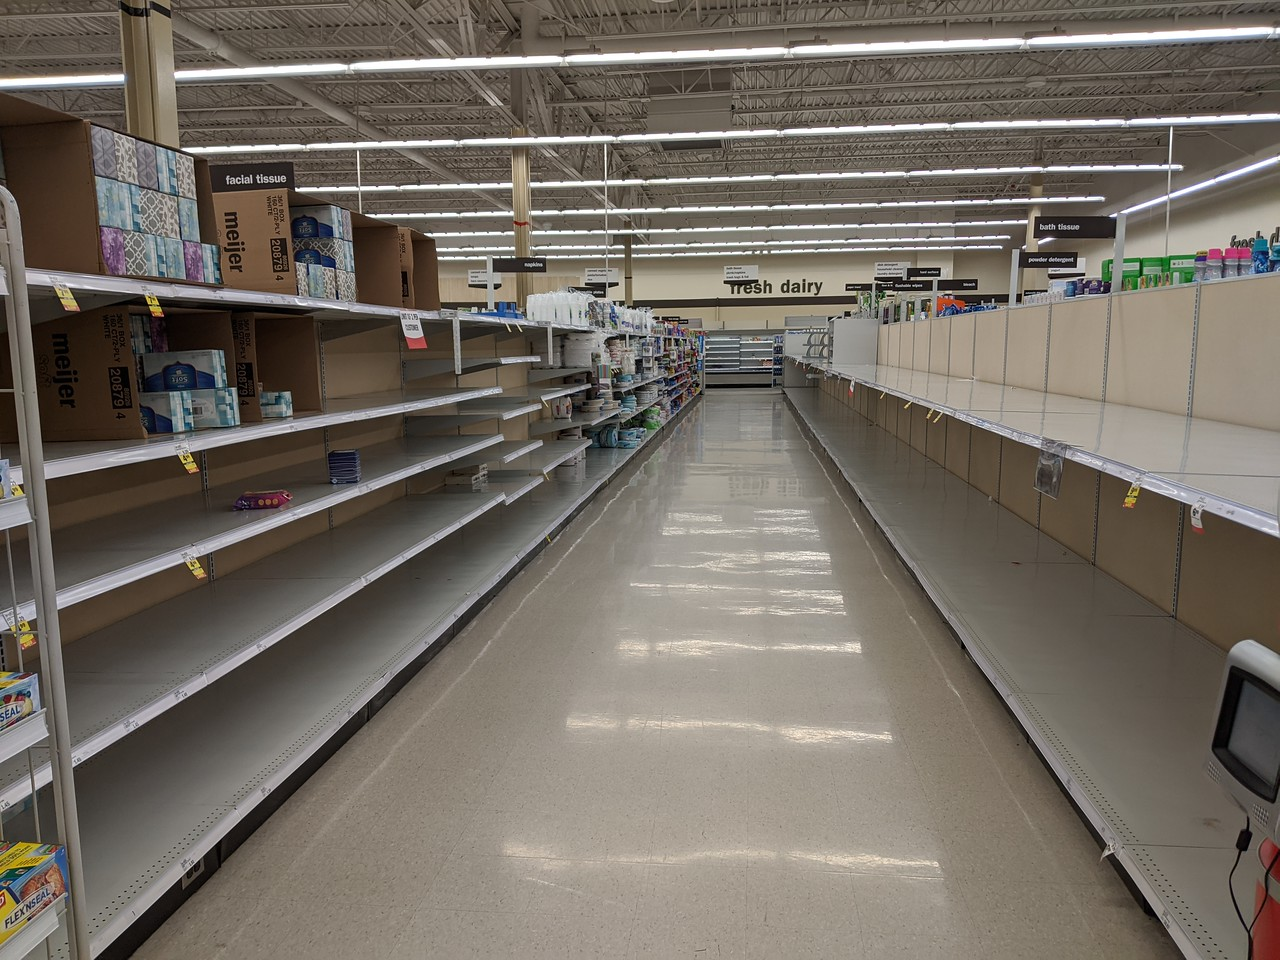 Toilet paper and other paper goods aisle, Meijer, Beavercreek, Ohio, March 20, 2020, about 5:45 pm